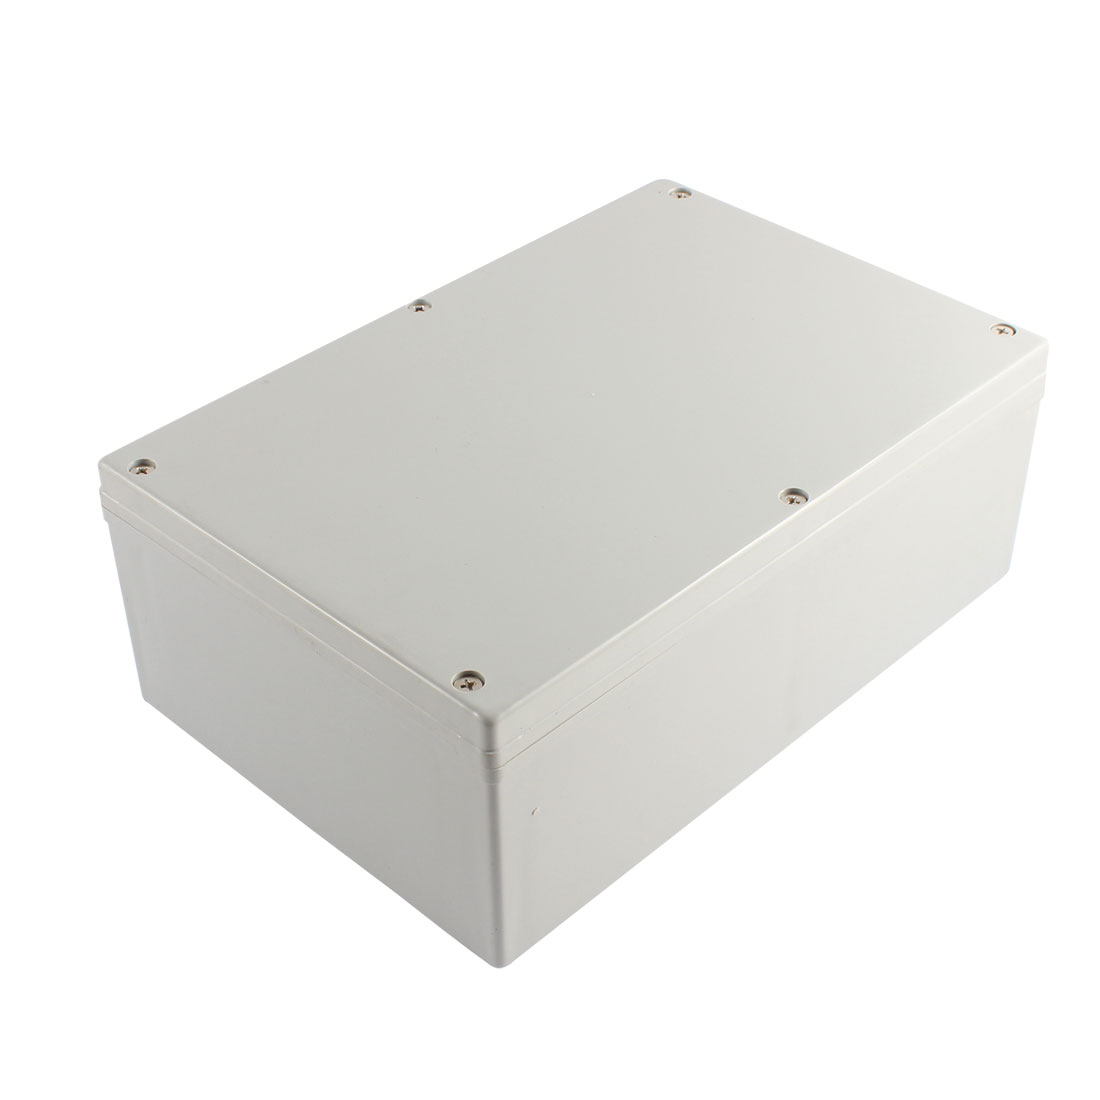 Gray Plastic Electronic Project Junction Box Enclosure Case 238 x 158 x 90mm